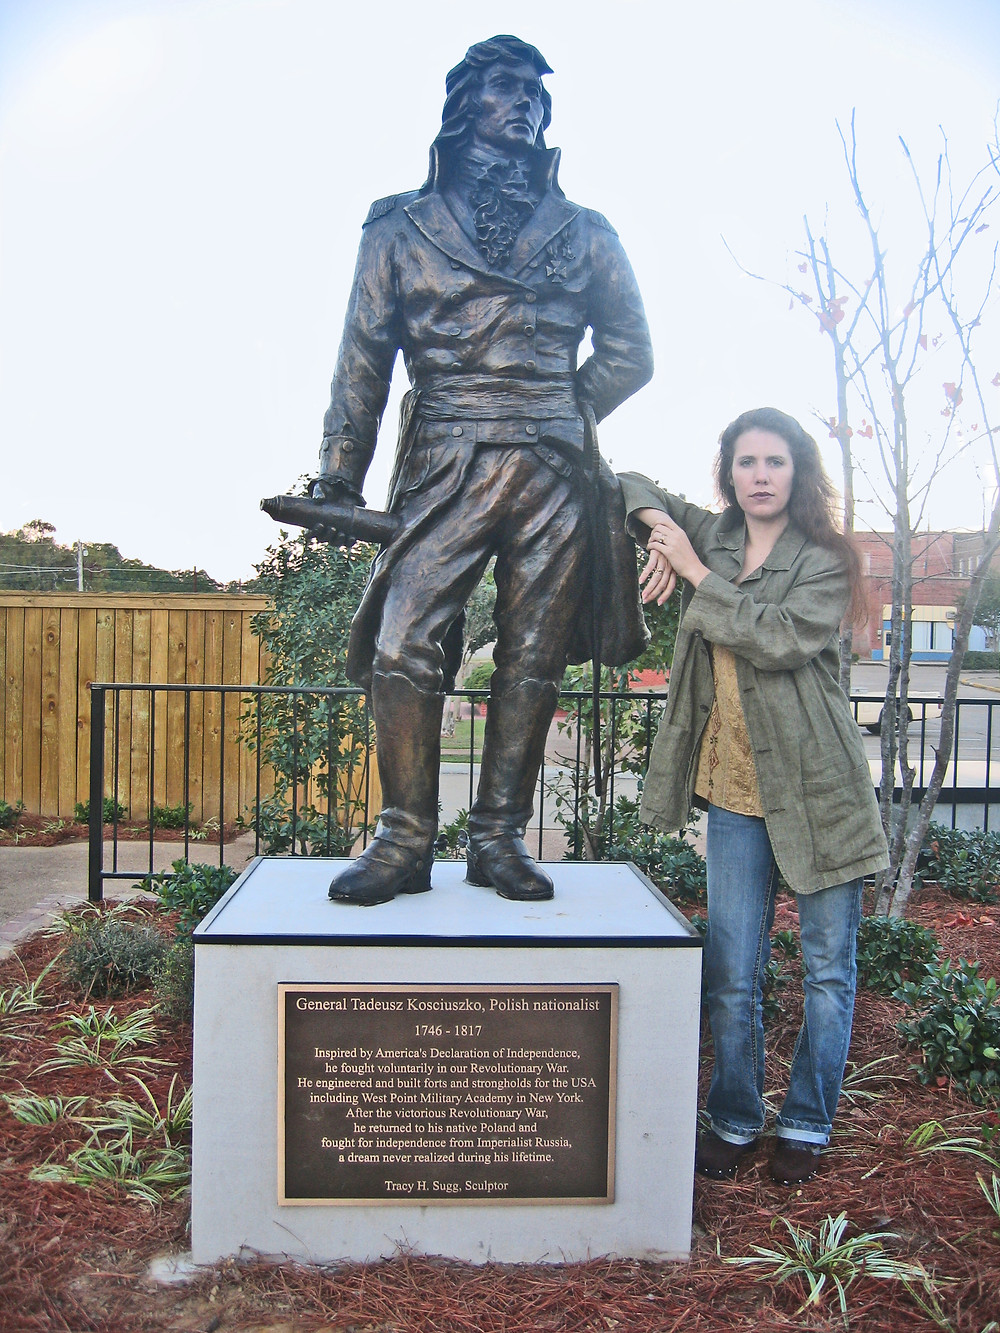 Kosciuszko monument unveiled in 2006